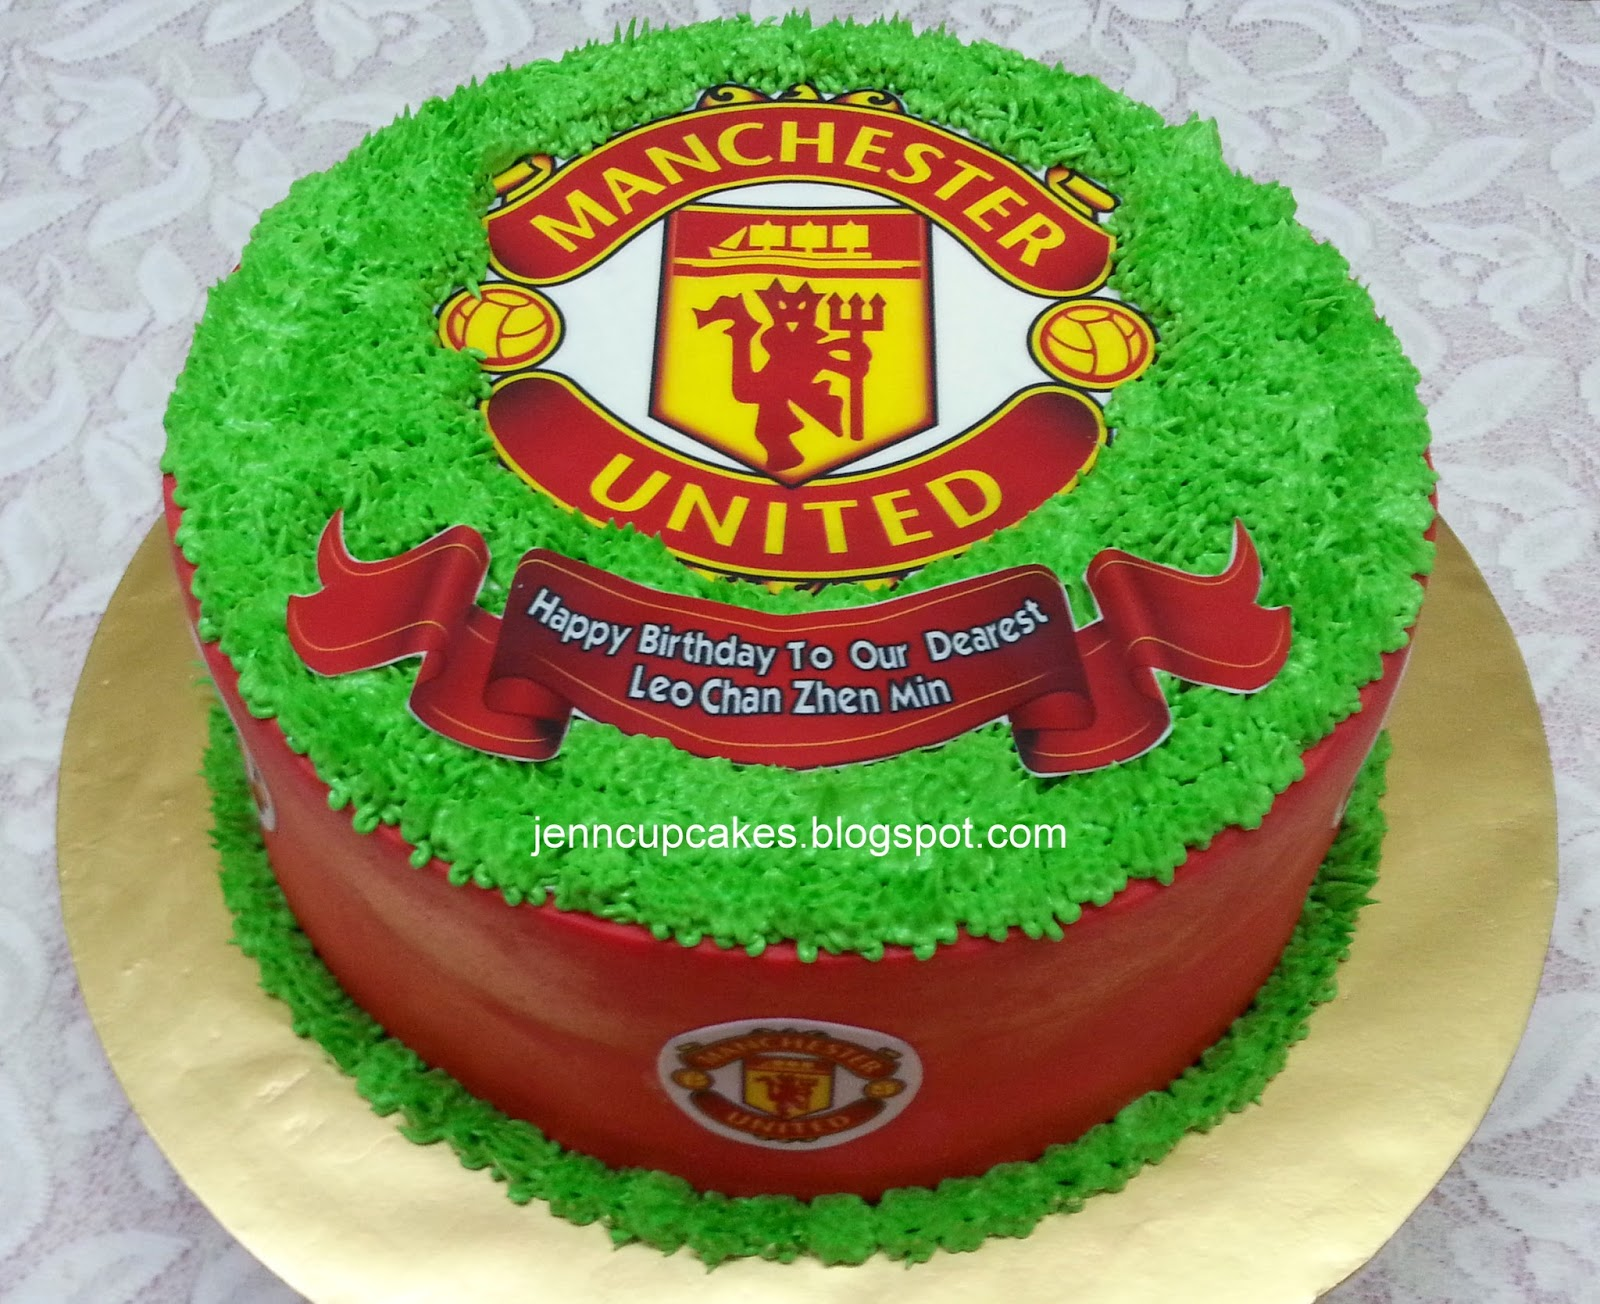 Jenn Cupcakes Muffins Manchester United Cake Cupcakes